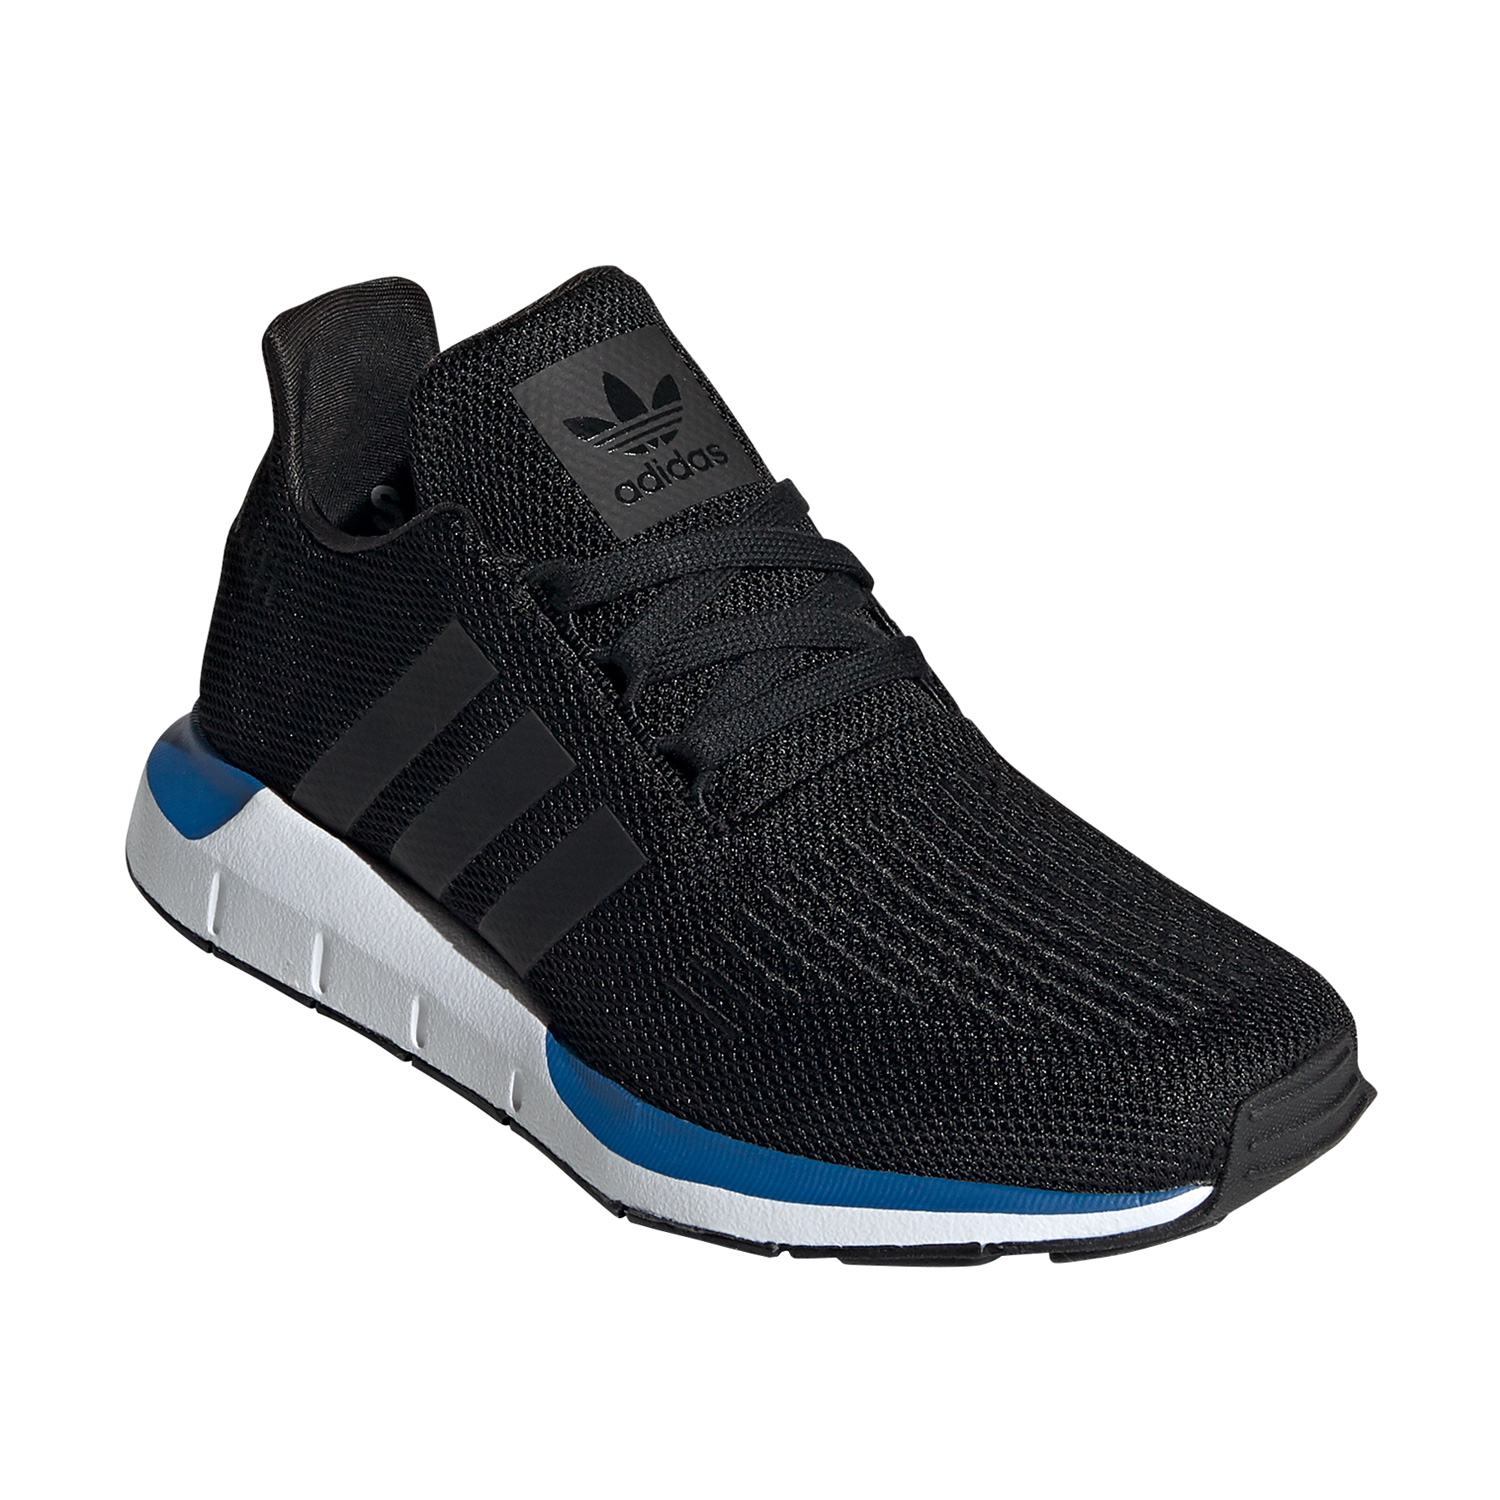 adidas Originals Swift Run J Kinder Sneaker schwarz weiß blau EE7025